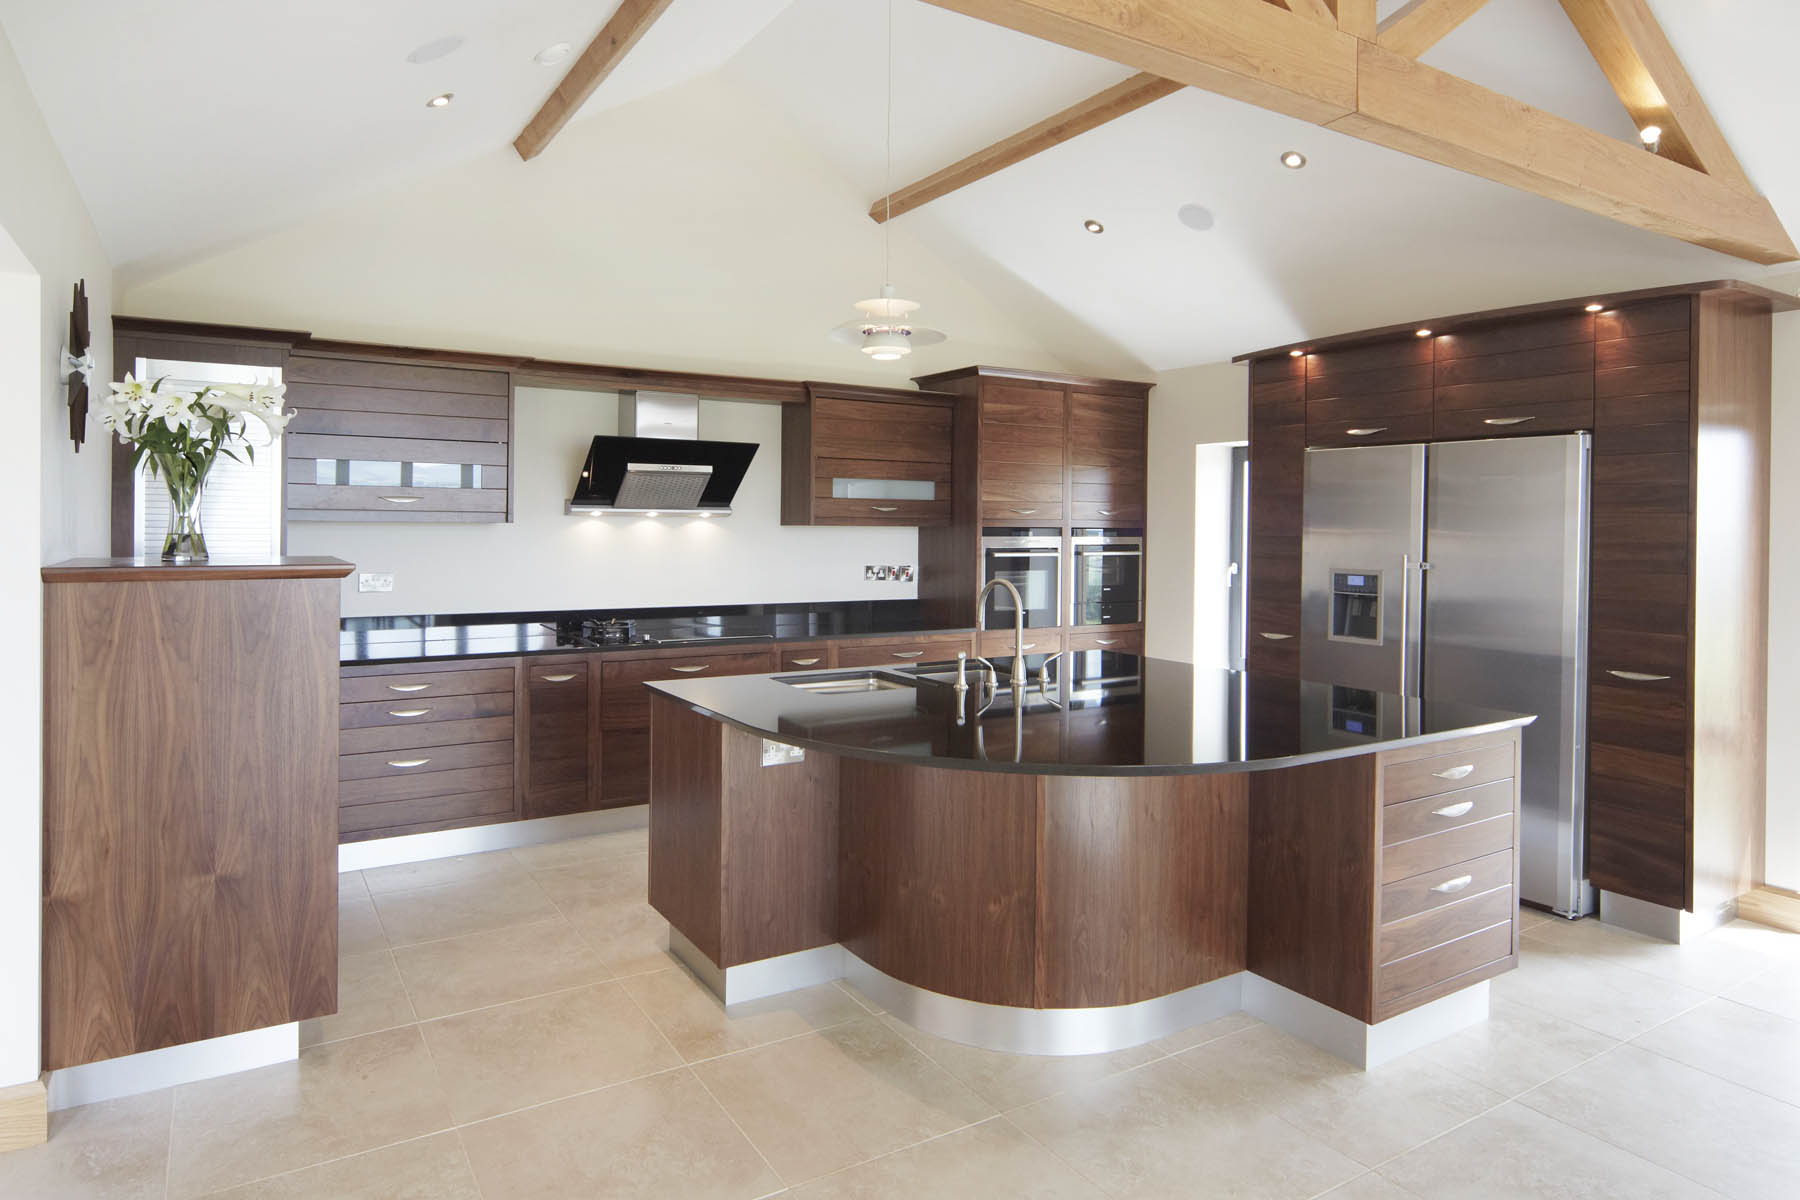 Kitchens california remodeling inc for Kitchen modeling ideas